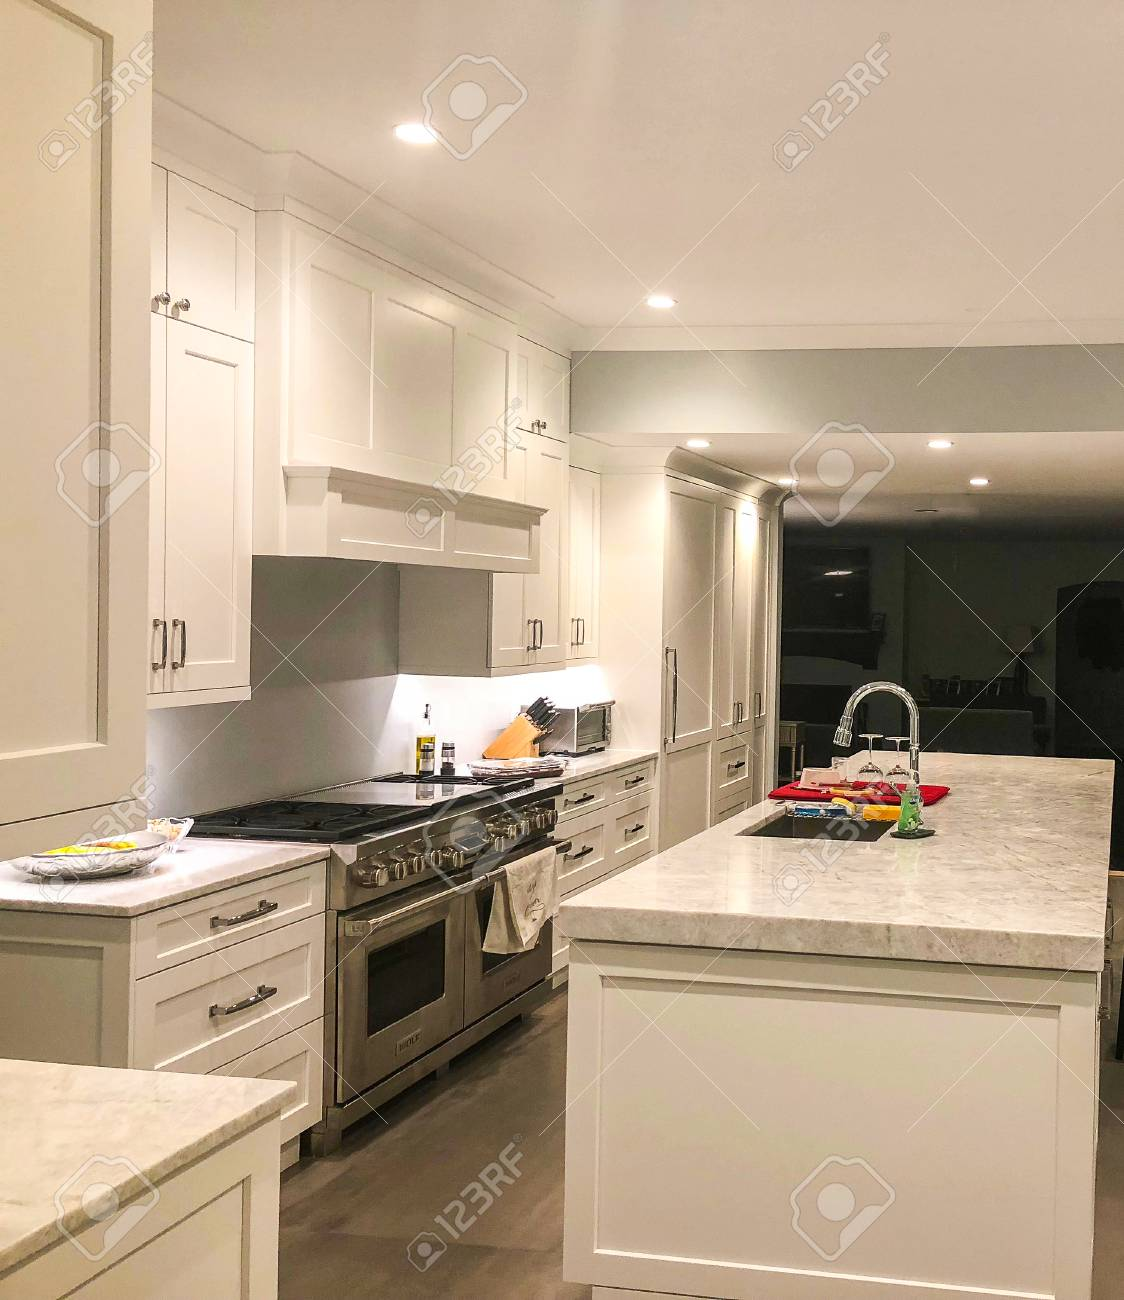 White Modern Kitchen Cabinets With Modern Appliences And Granite Stock Photo Picture And Royalty Free Image Image 113376632